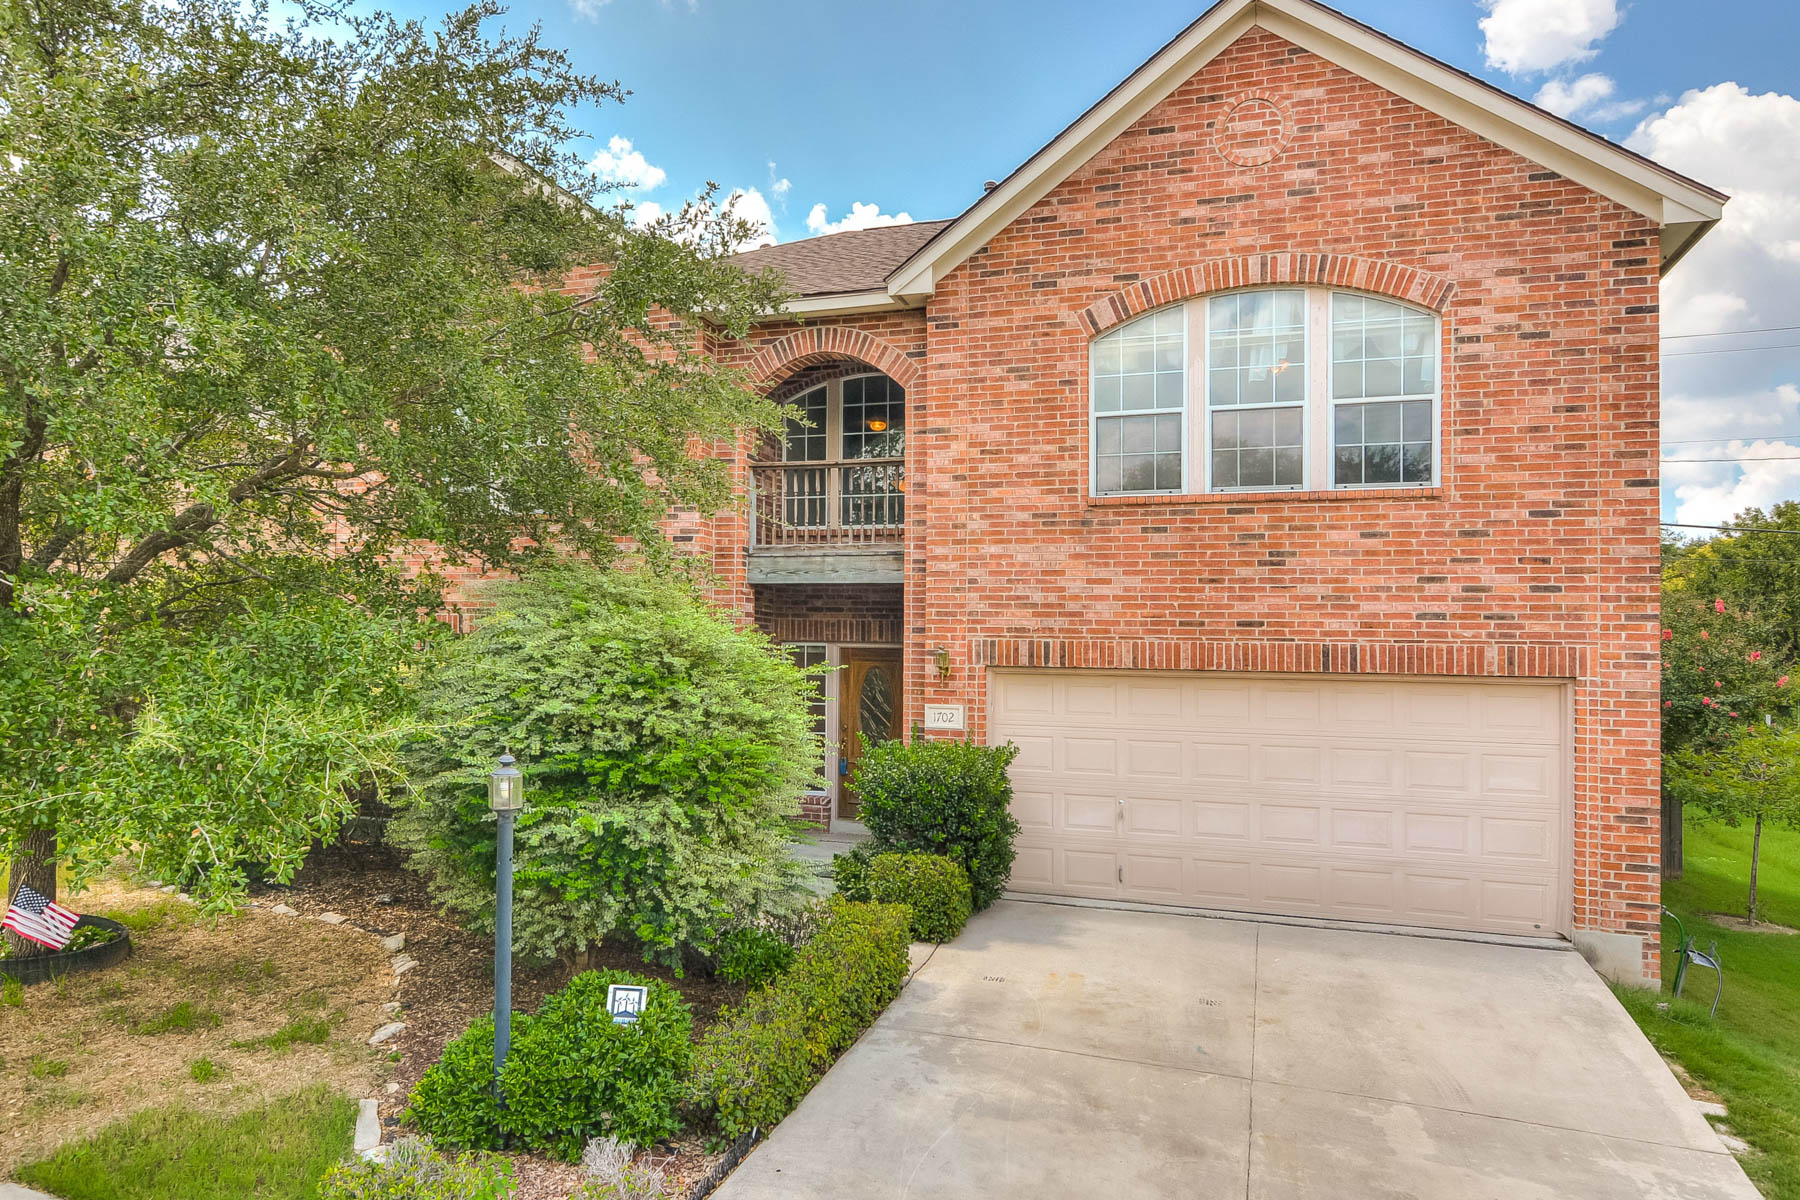 Single Family Home for Sale at Warm and Inviting Home in Santa Fe Trail 1702 Santa Fe Trl San Antonio, Texas 78232 United States